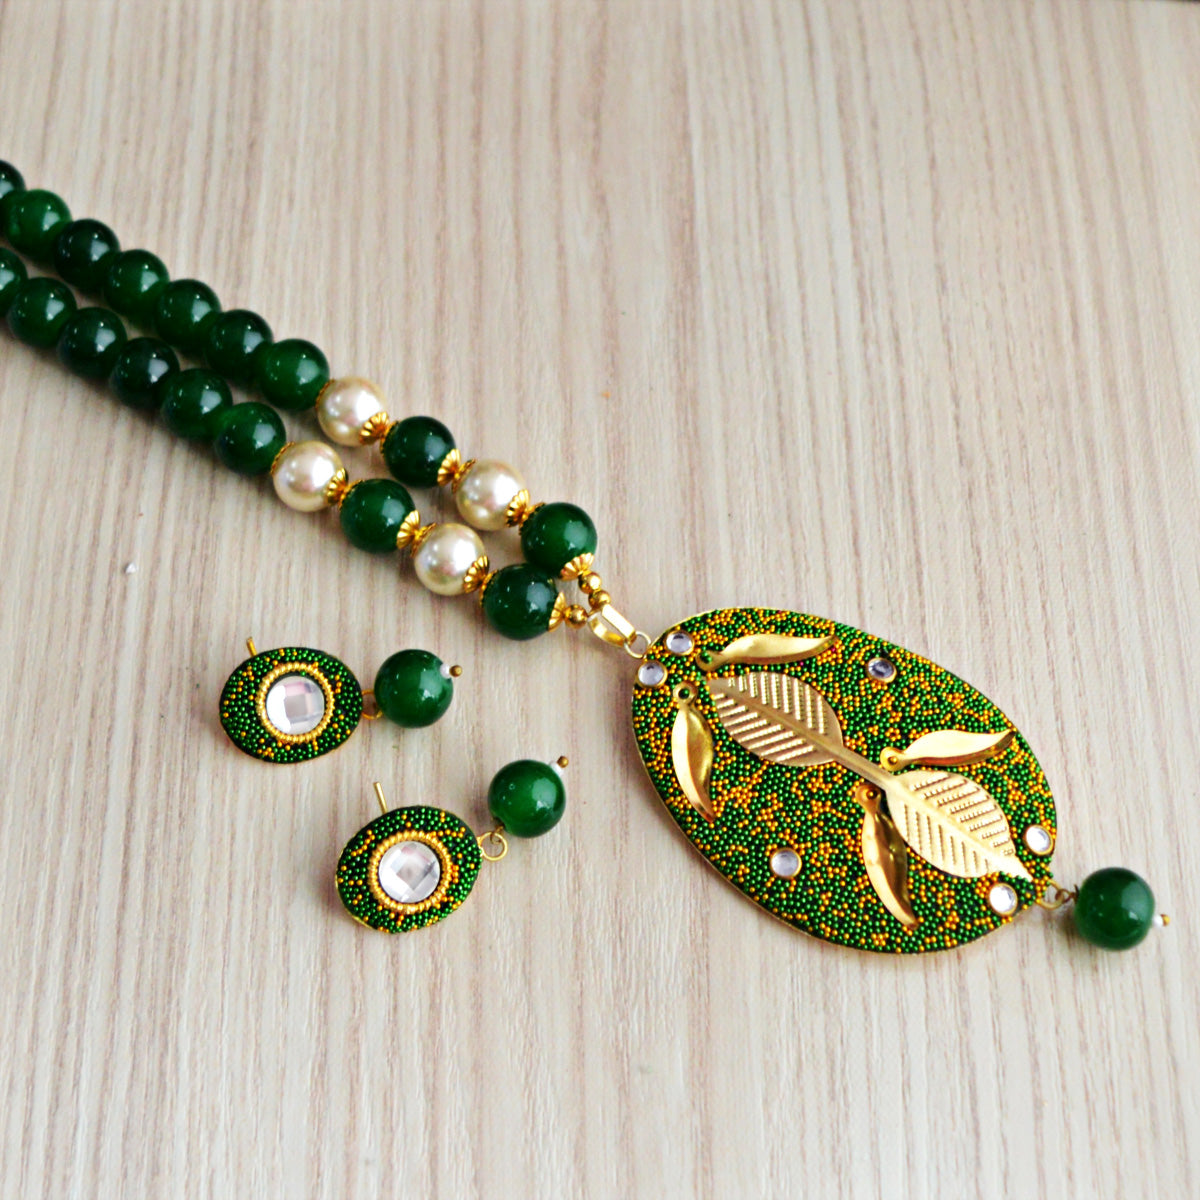 Dark Green Colour Beads Floral Design With Kundan Meenakari Necklace Set